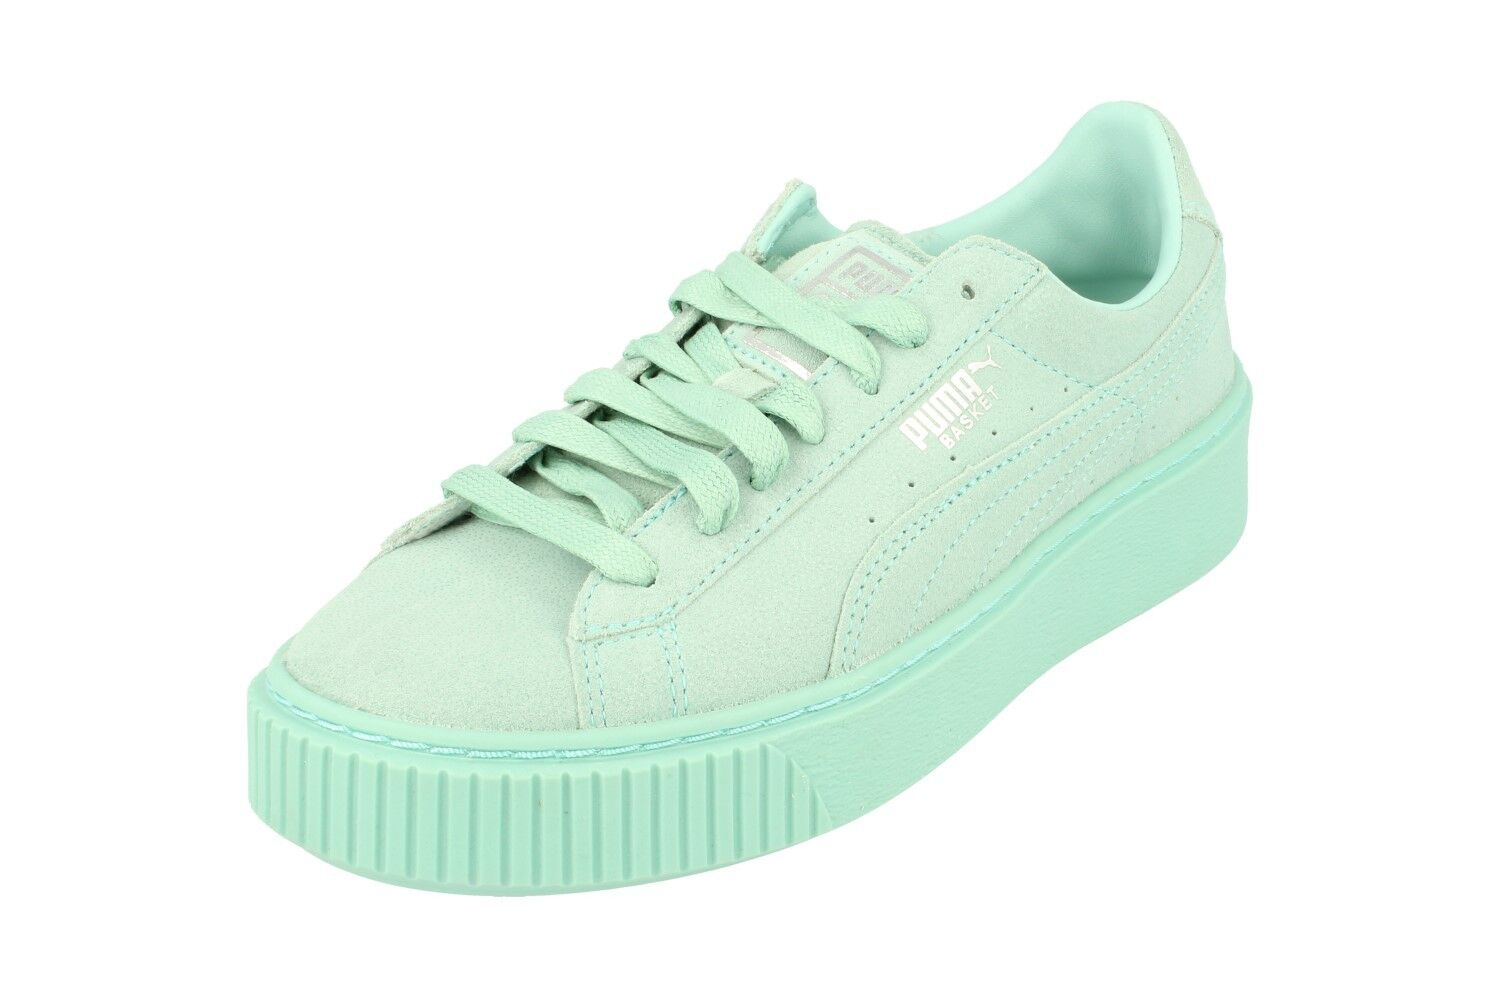 Puma Basket Platform Reset Womens Trainers 363313 Sneakers shoes 03